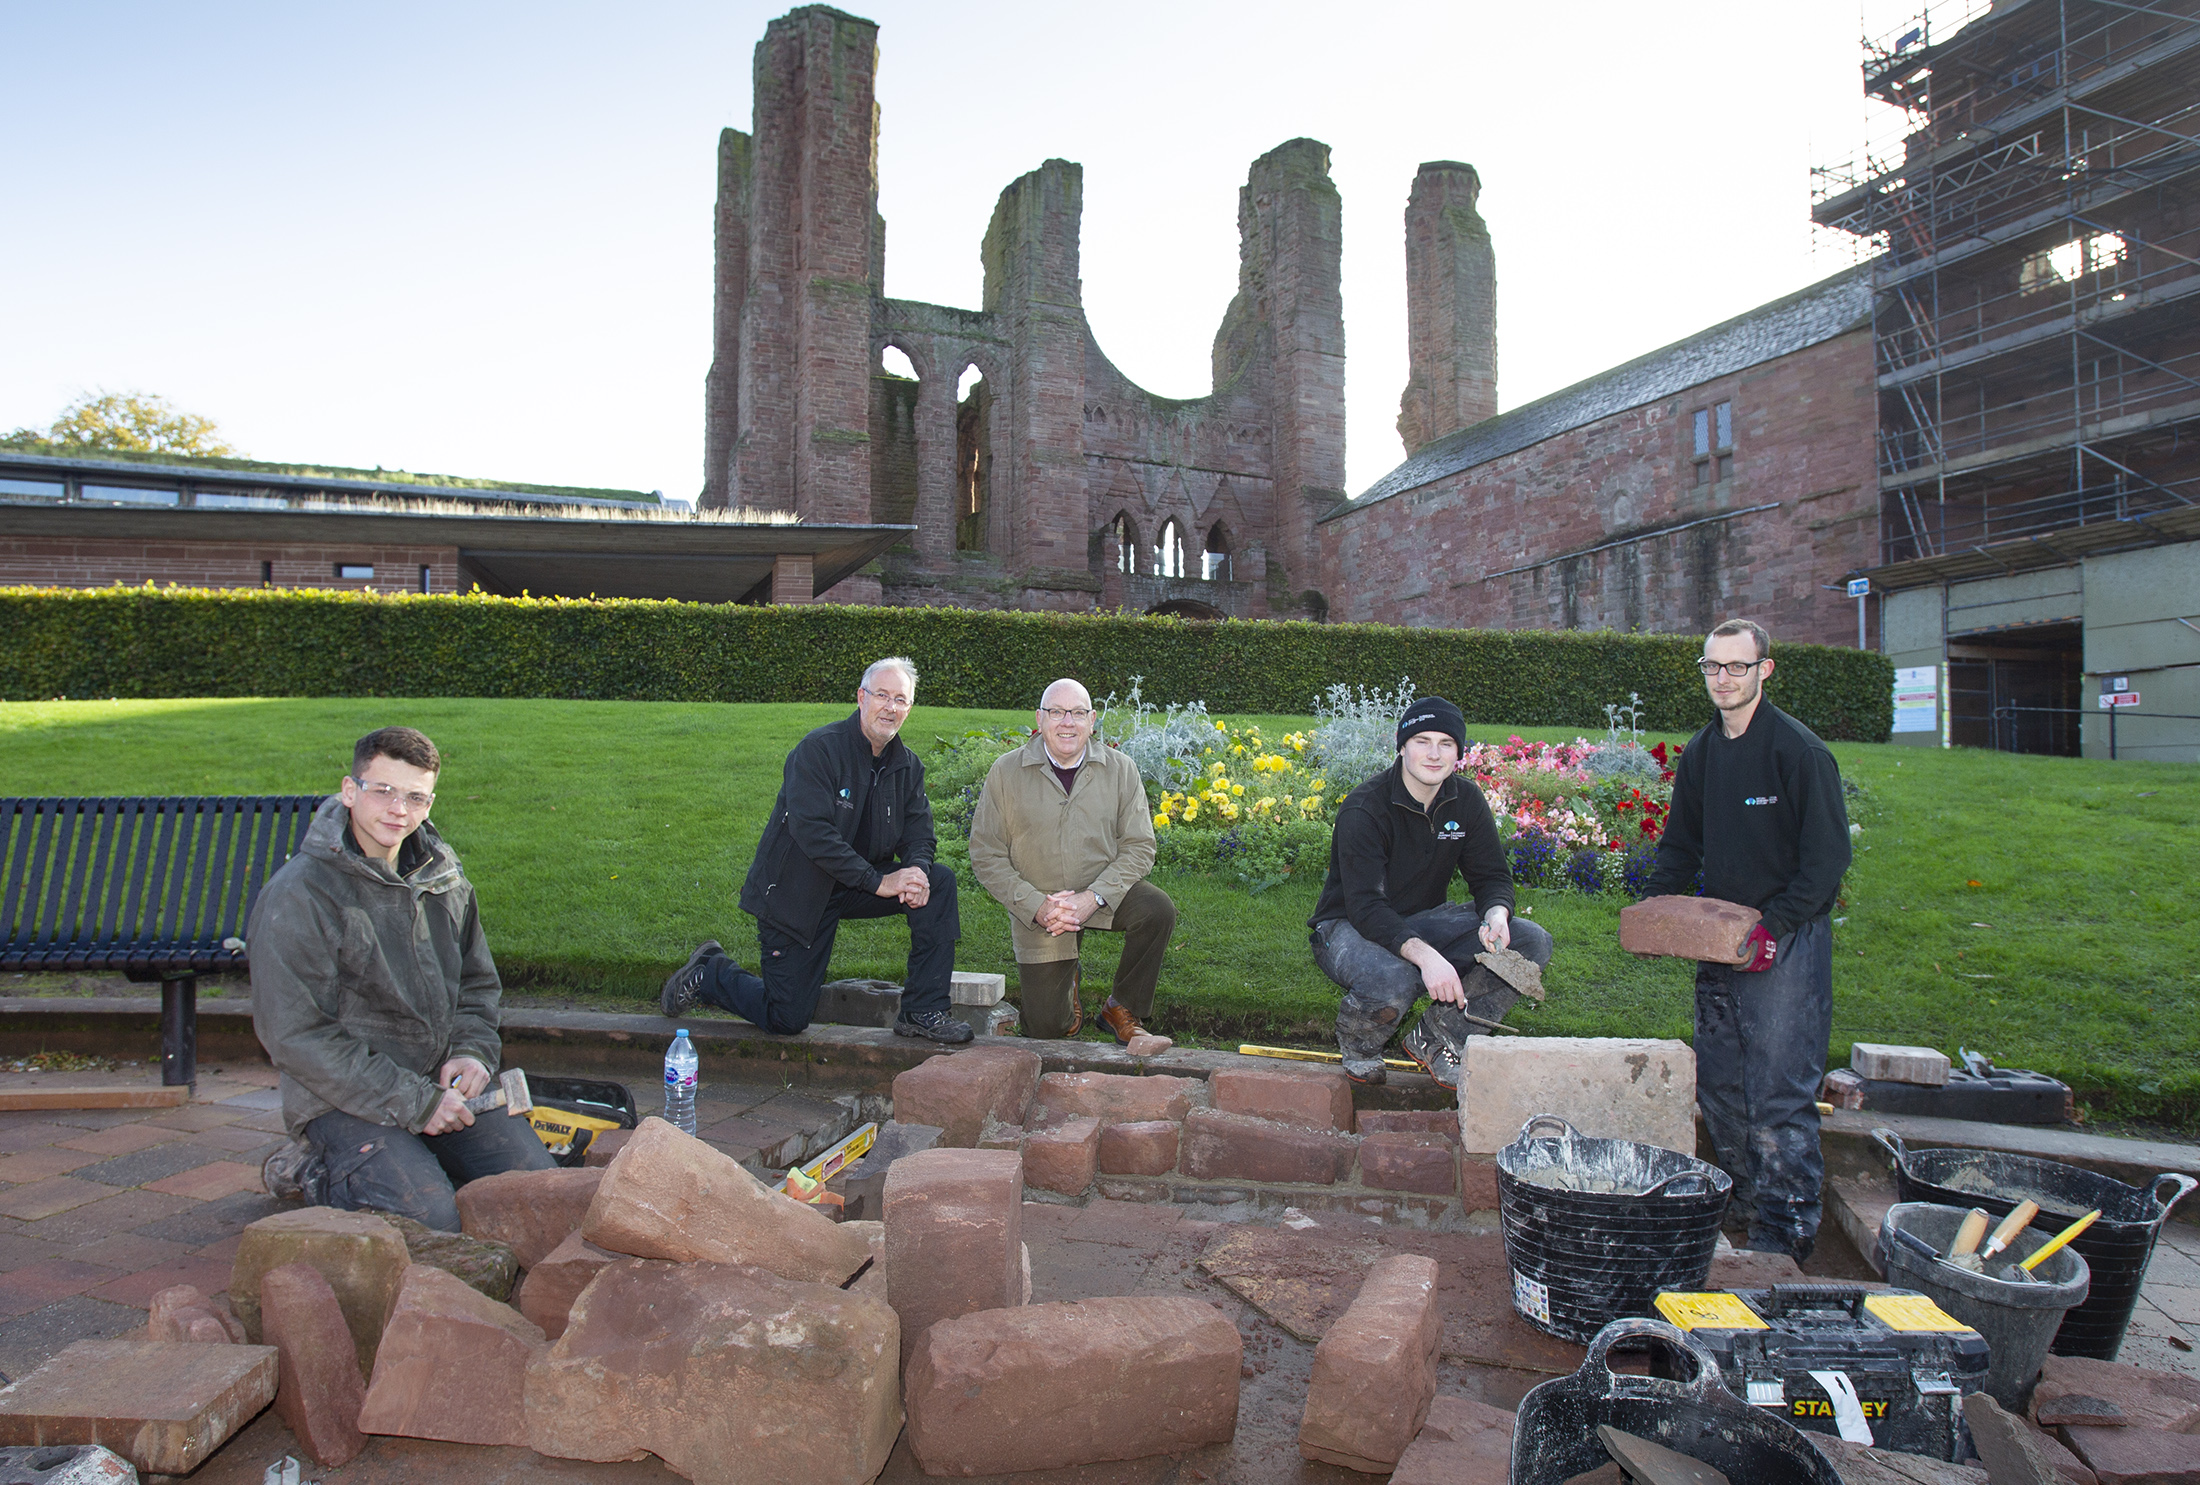 James Robertson.(2nd from left).. Historic Environment Scotland's Works Manager alongside  Ian Ballantyne(3rd from left) past Dean of Arbroath Guildry. also pictured are Historic Enviroment Scotland apprentices L to R: Liam Macaulay, Luke Maher, Douglas Stevens